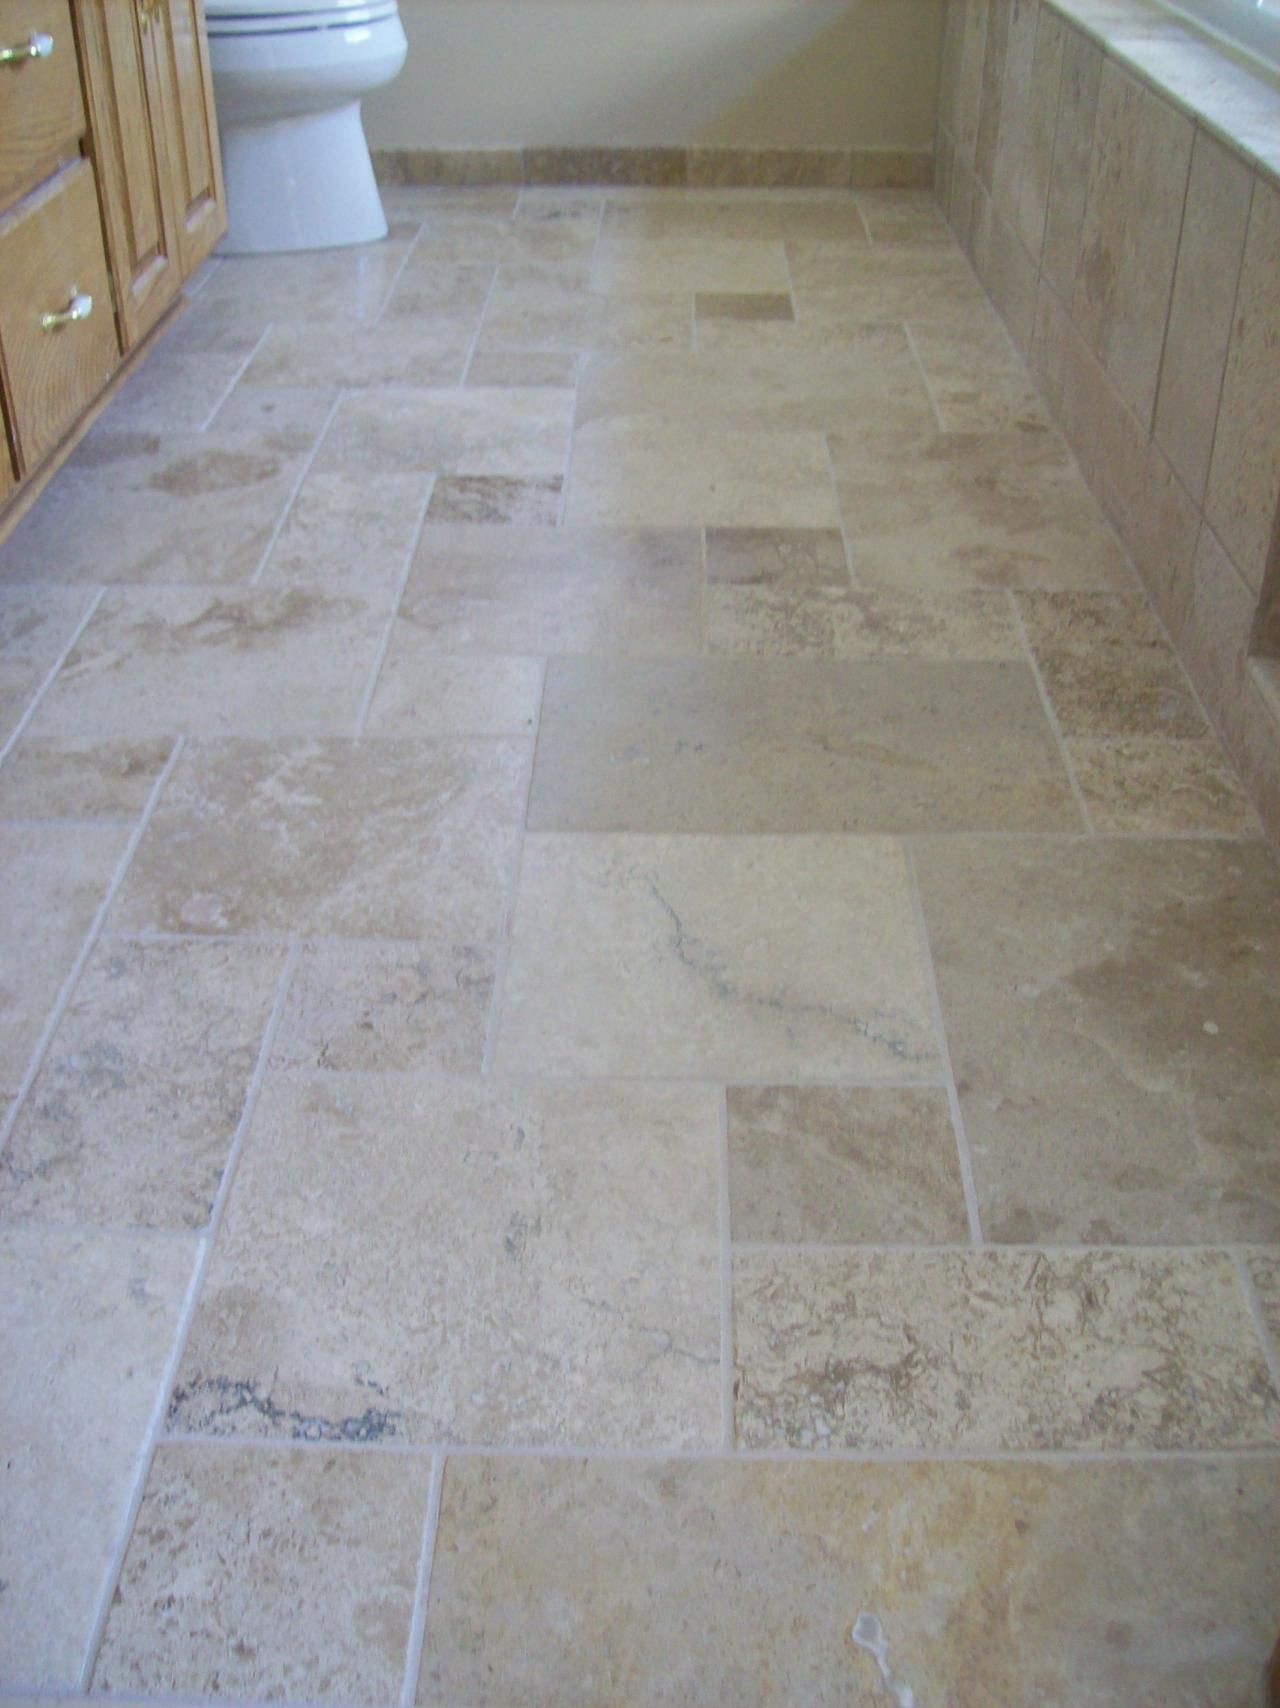 Travertine natural stone tile in the versaille pattern on the travertine natural stone tile in the versaille pattern on the floor doublecrazyfo Choice Image